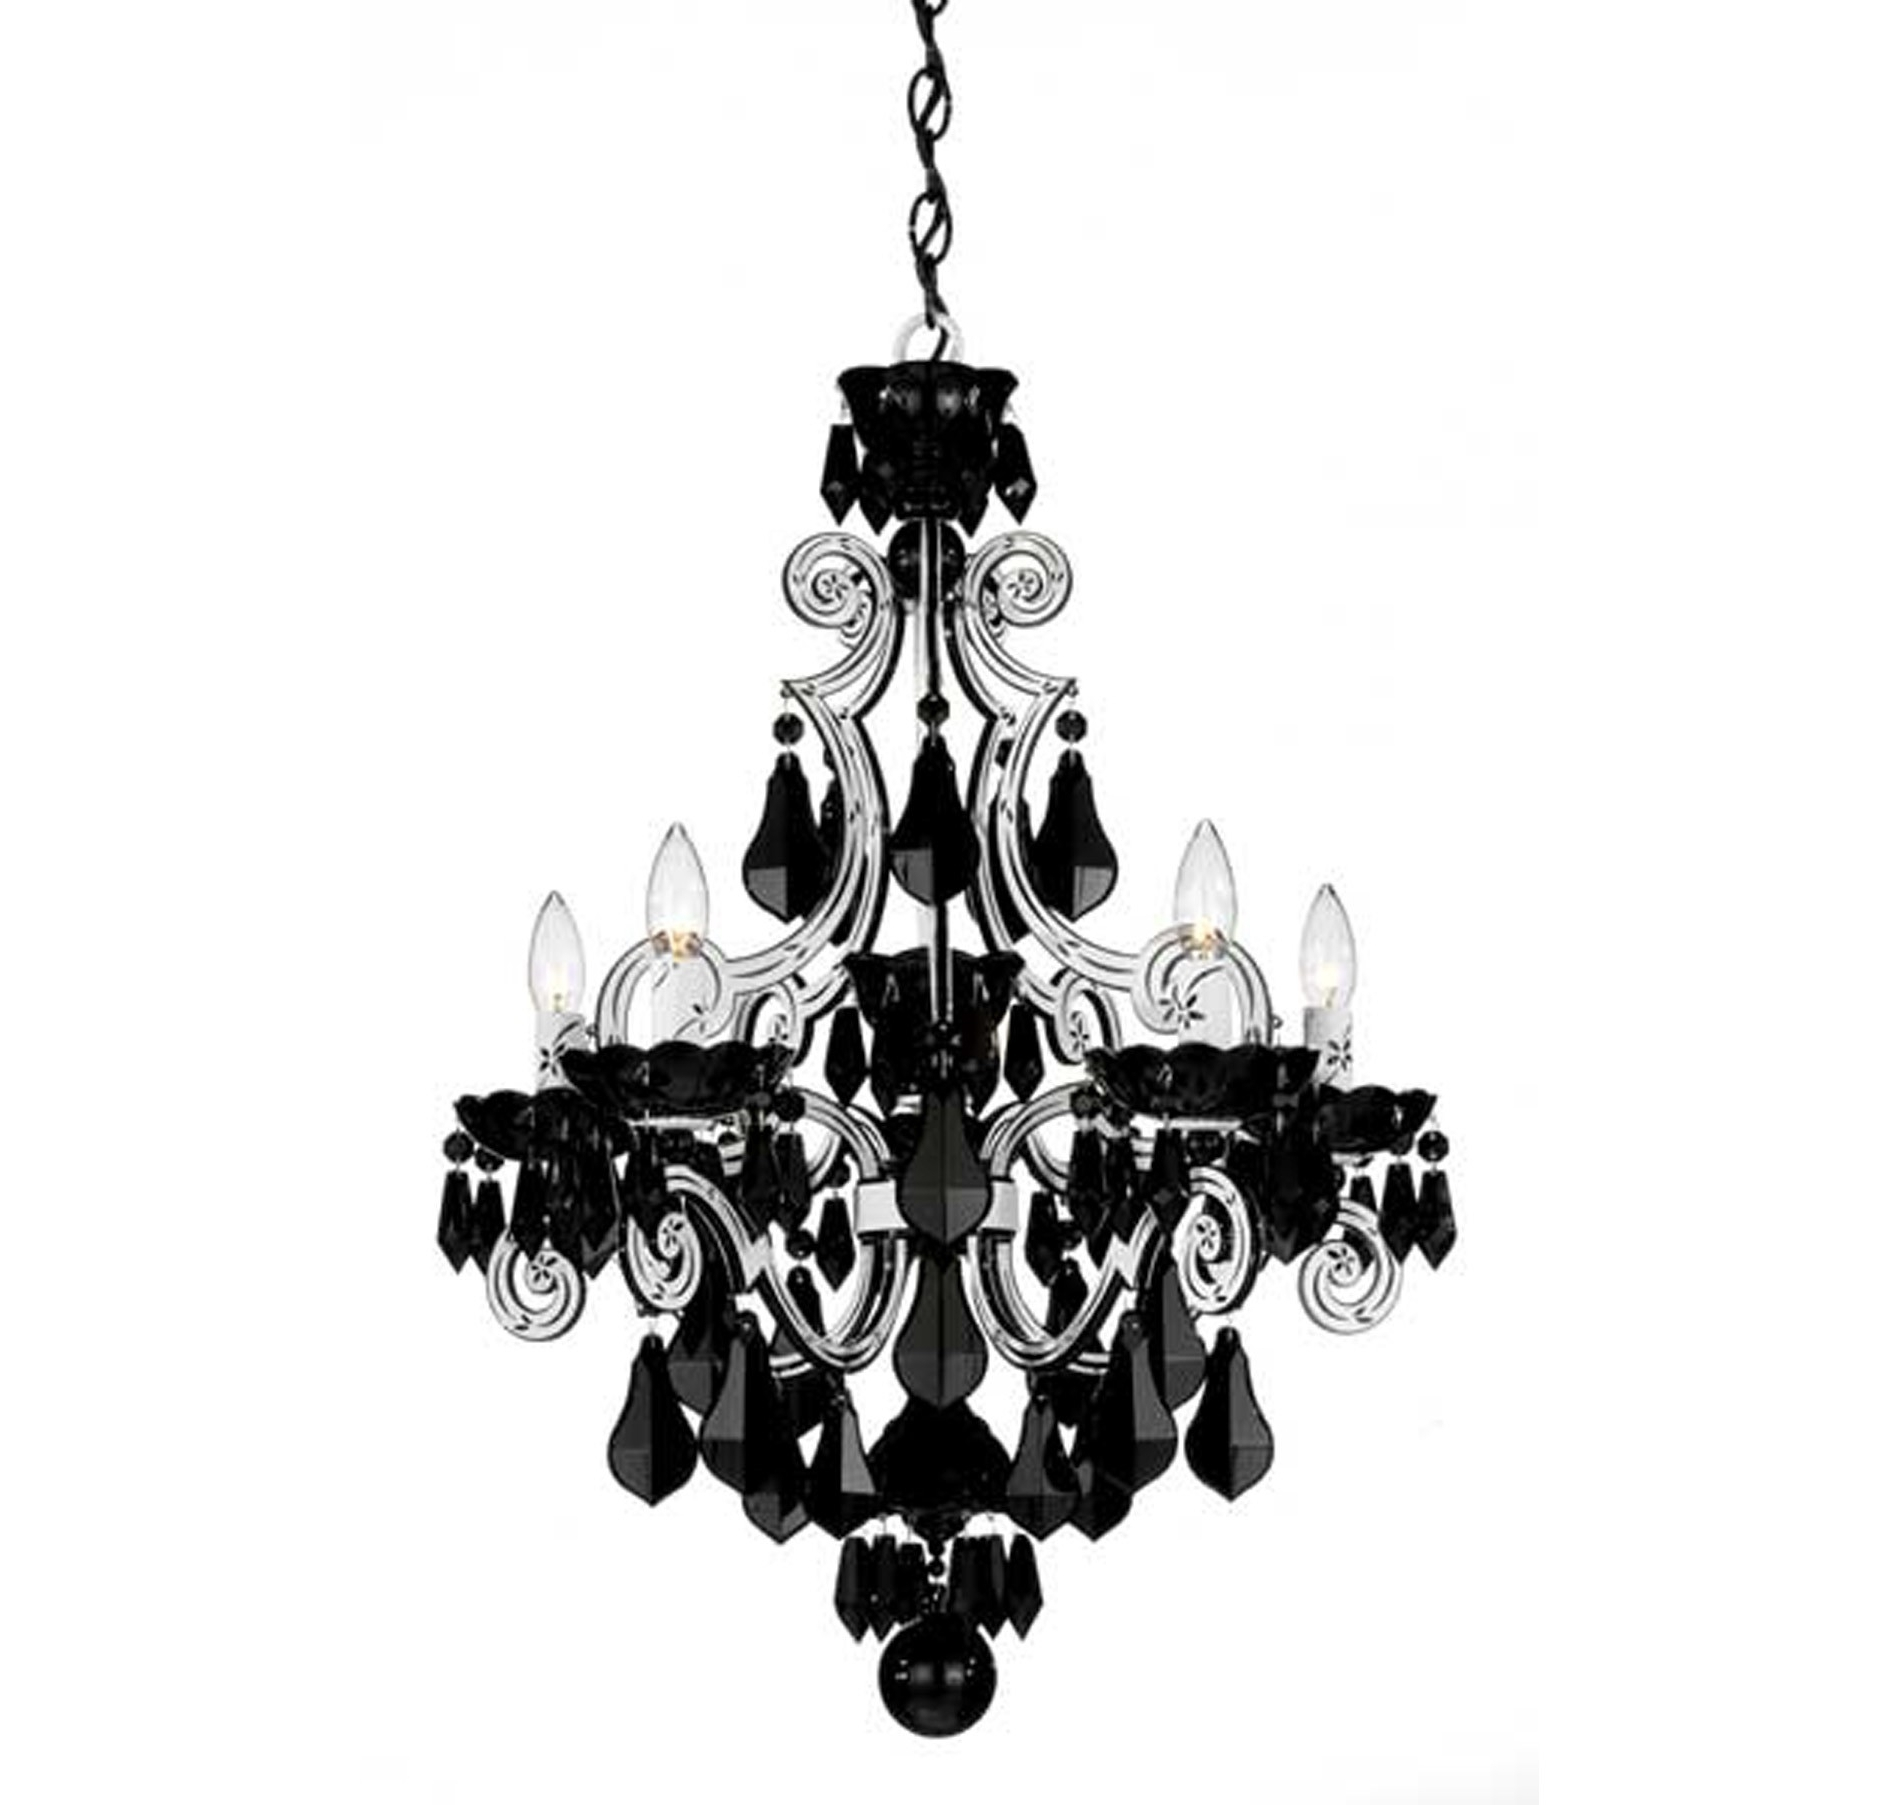 Latest Light : Alluring Clear White Black Glass Crystal Chandelier Metal Within Black Glass Chandeliers (View 10 of 15)